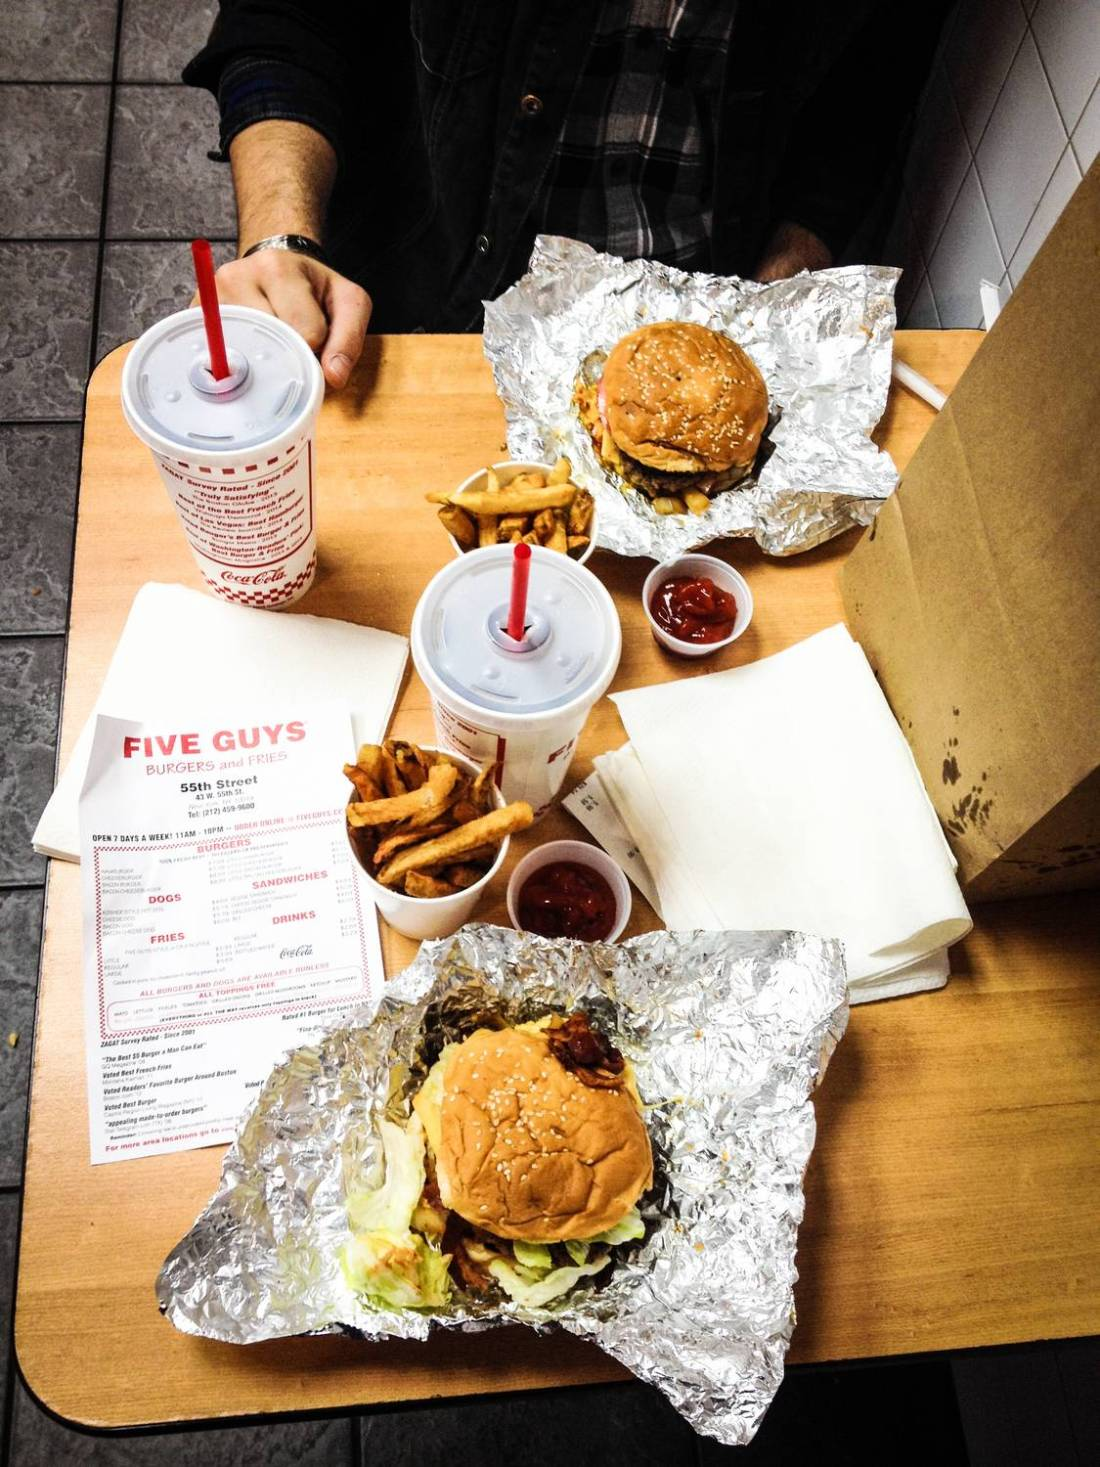 Our Five Guys burgers - New York City, USA